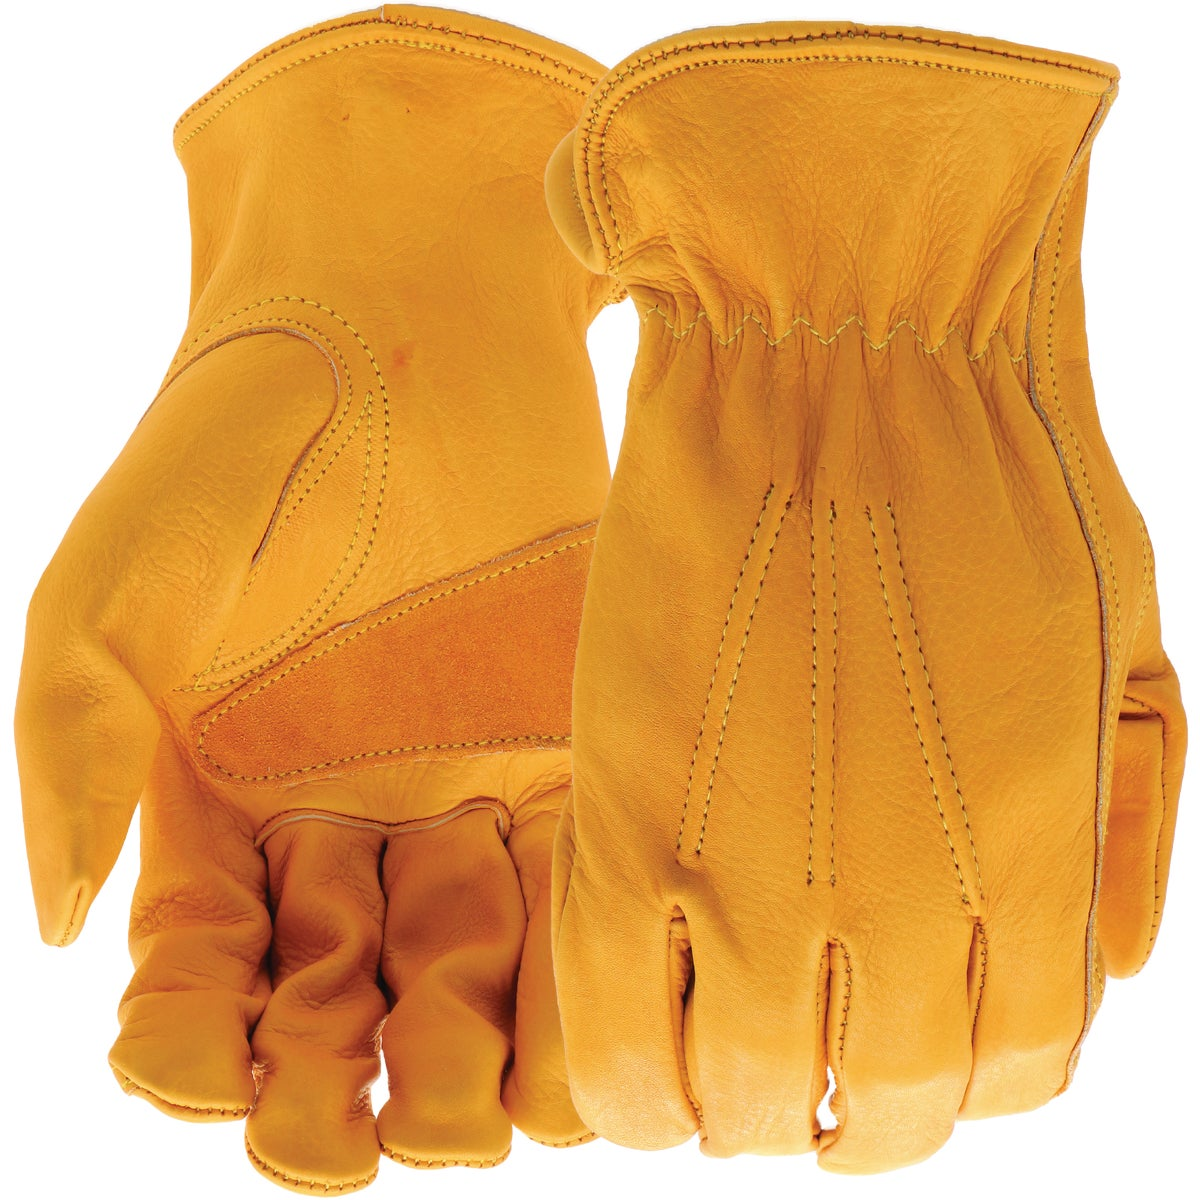 LRG GRAIN LEATHER GLOVE - 1130L by Wells Lamont